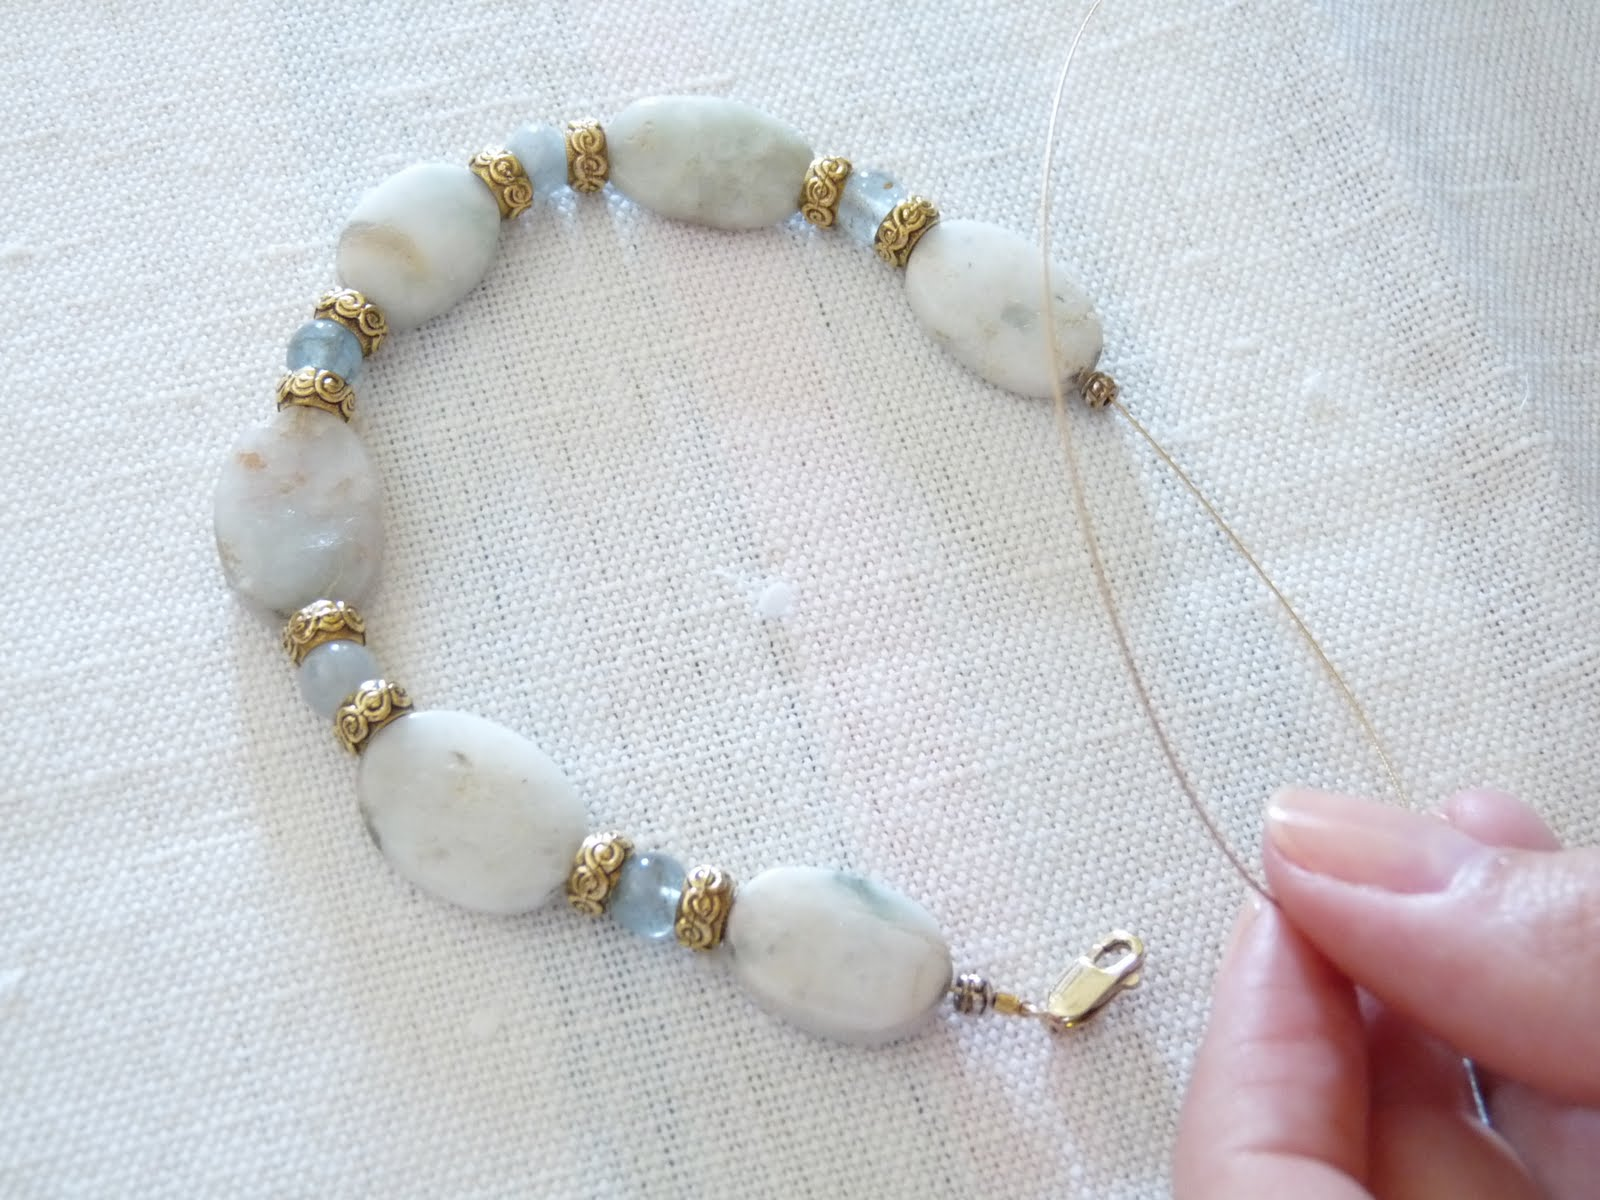 How to String Beads, Add a Clasp, and Use a Set of Crimp Pliers ...